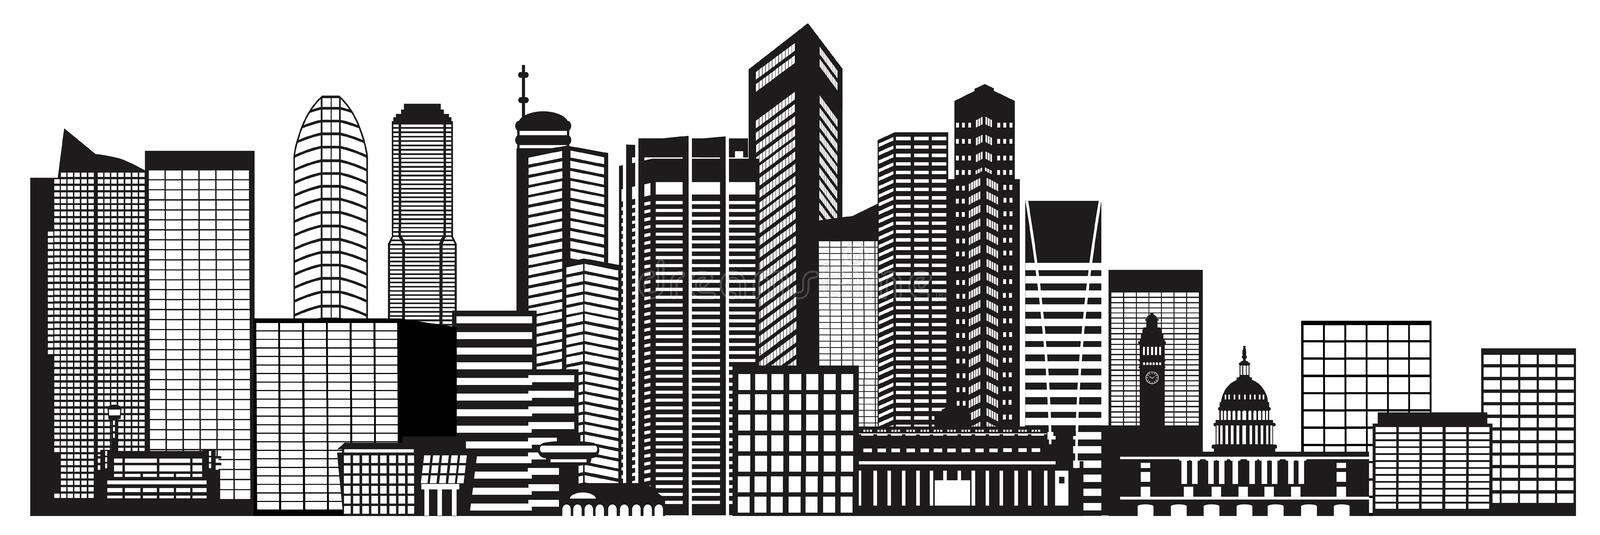 Singapore City Skyline Black and White Illustration vector illustration